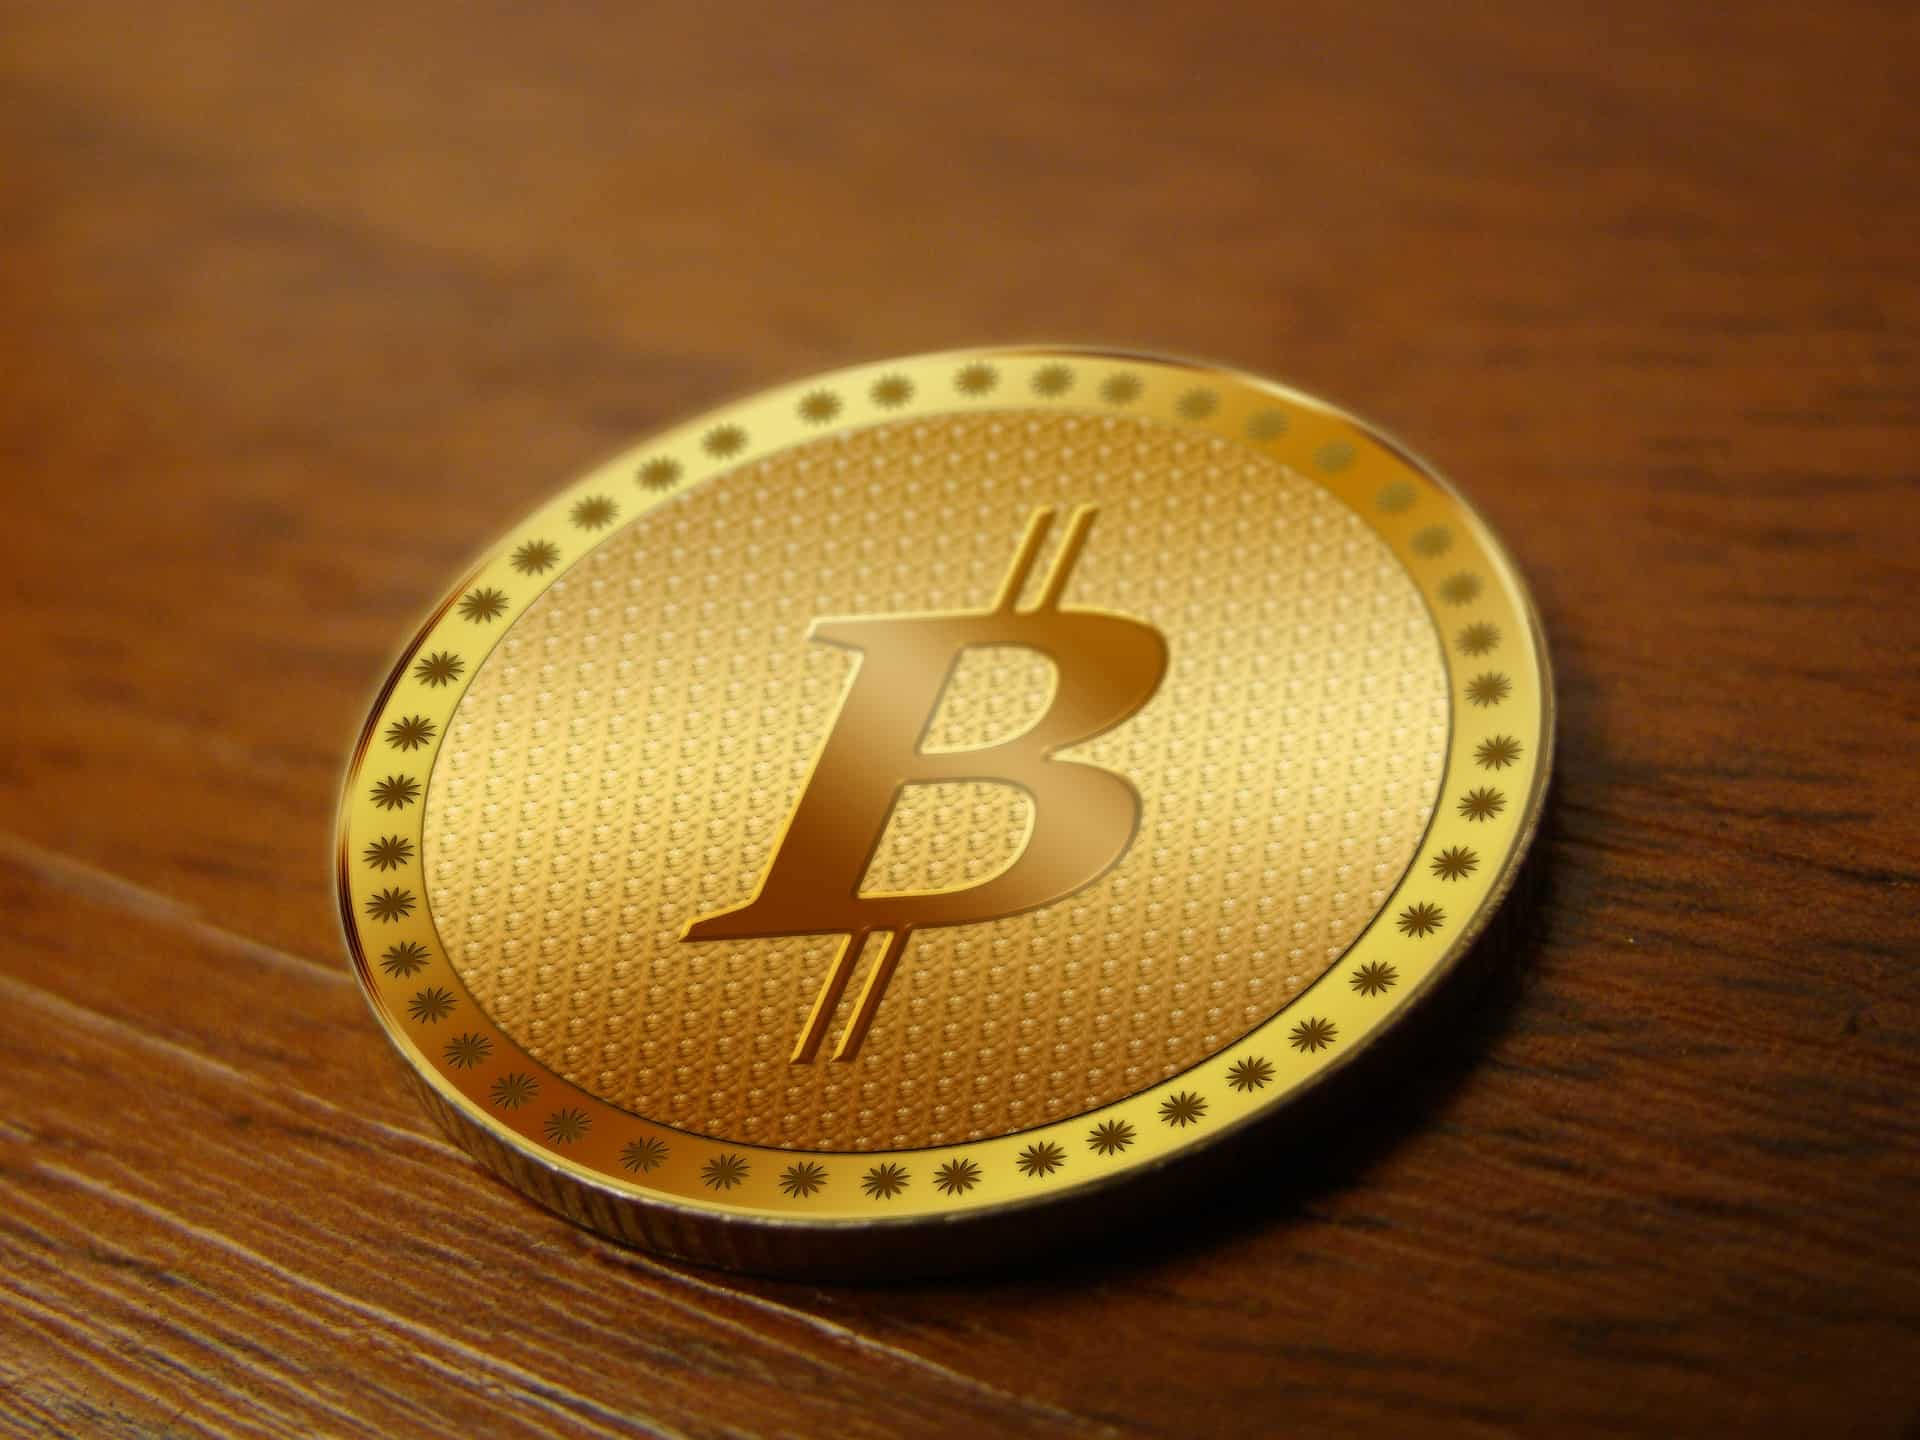 MicroStrategy Sells $400 Million in Debt Securities for Bitcoin Purchases